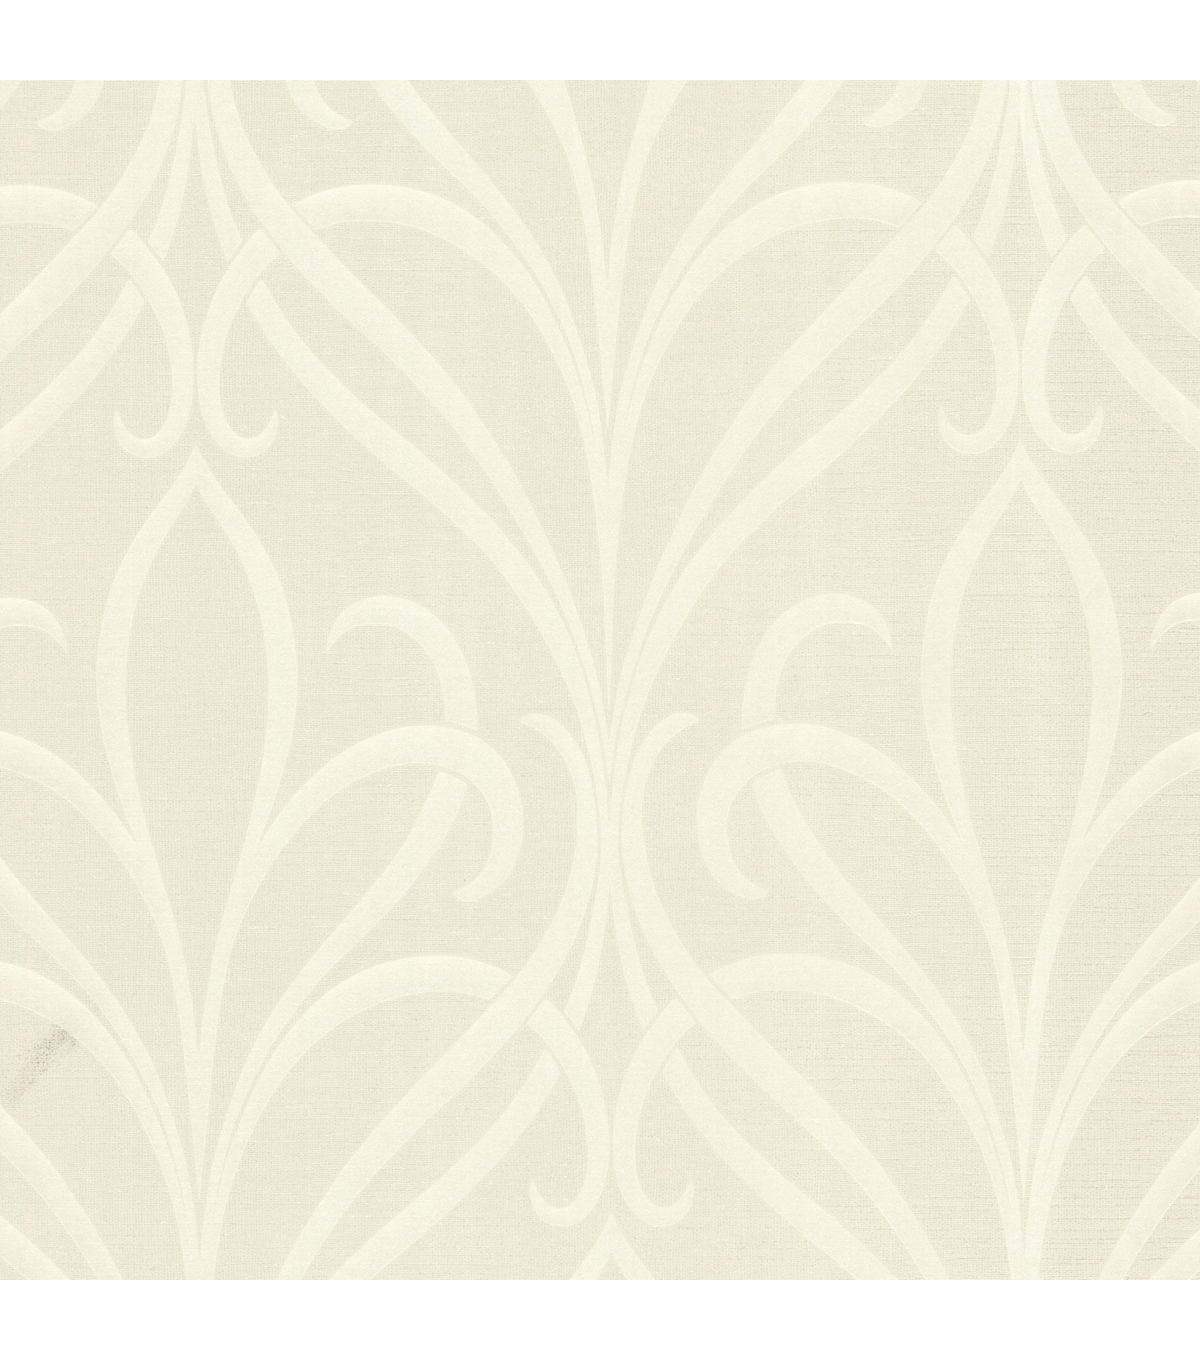 Lalique Cream Nouveau Damask Wallpaper Sample